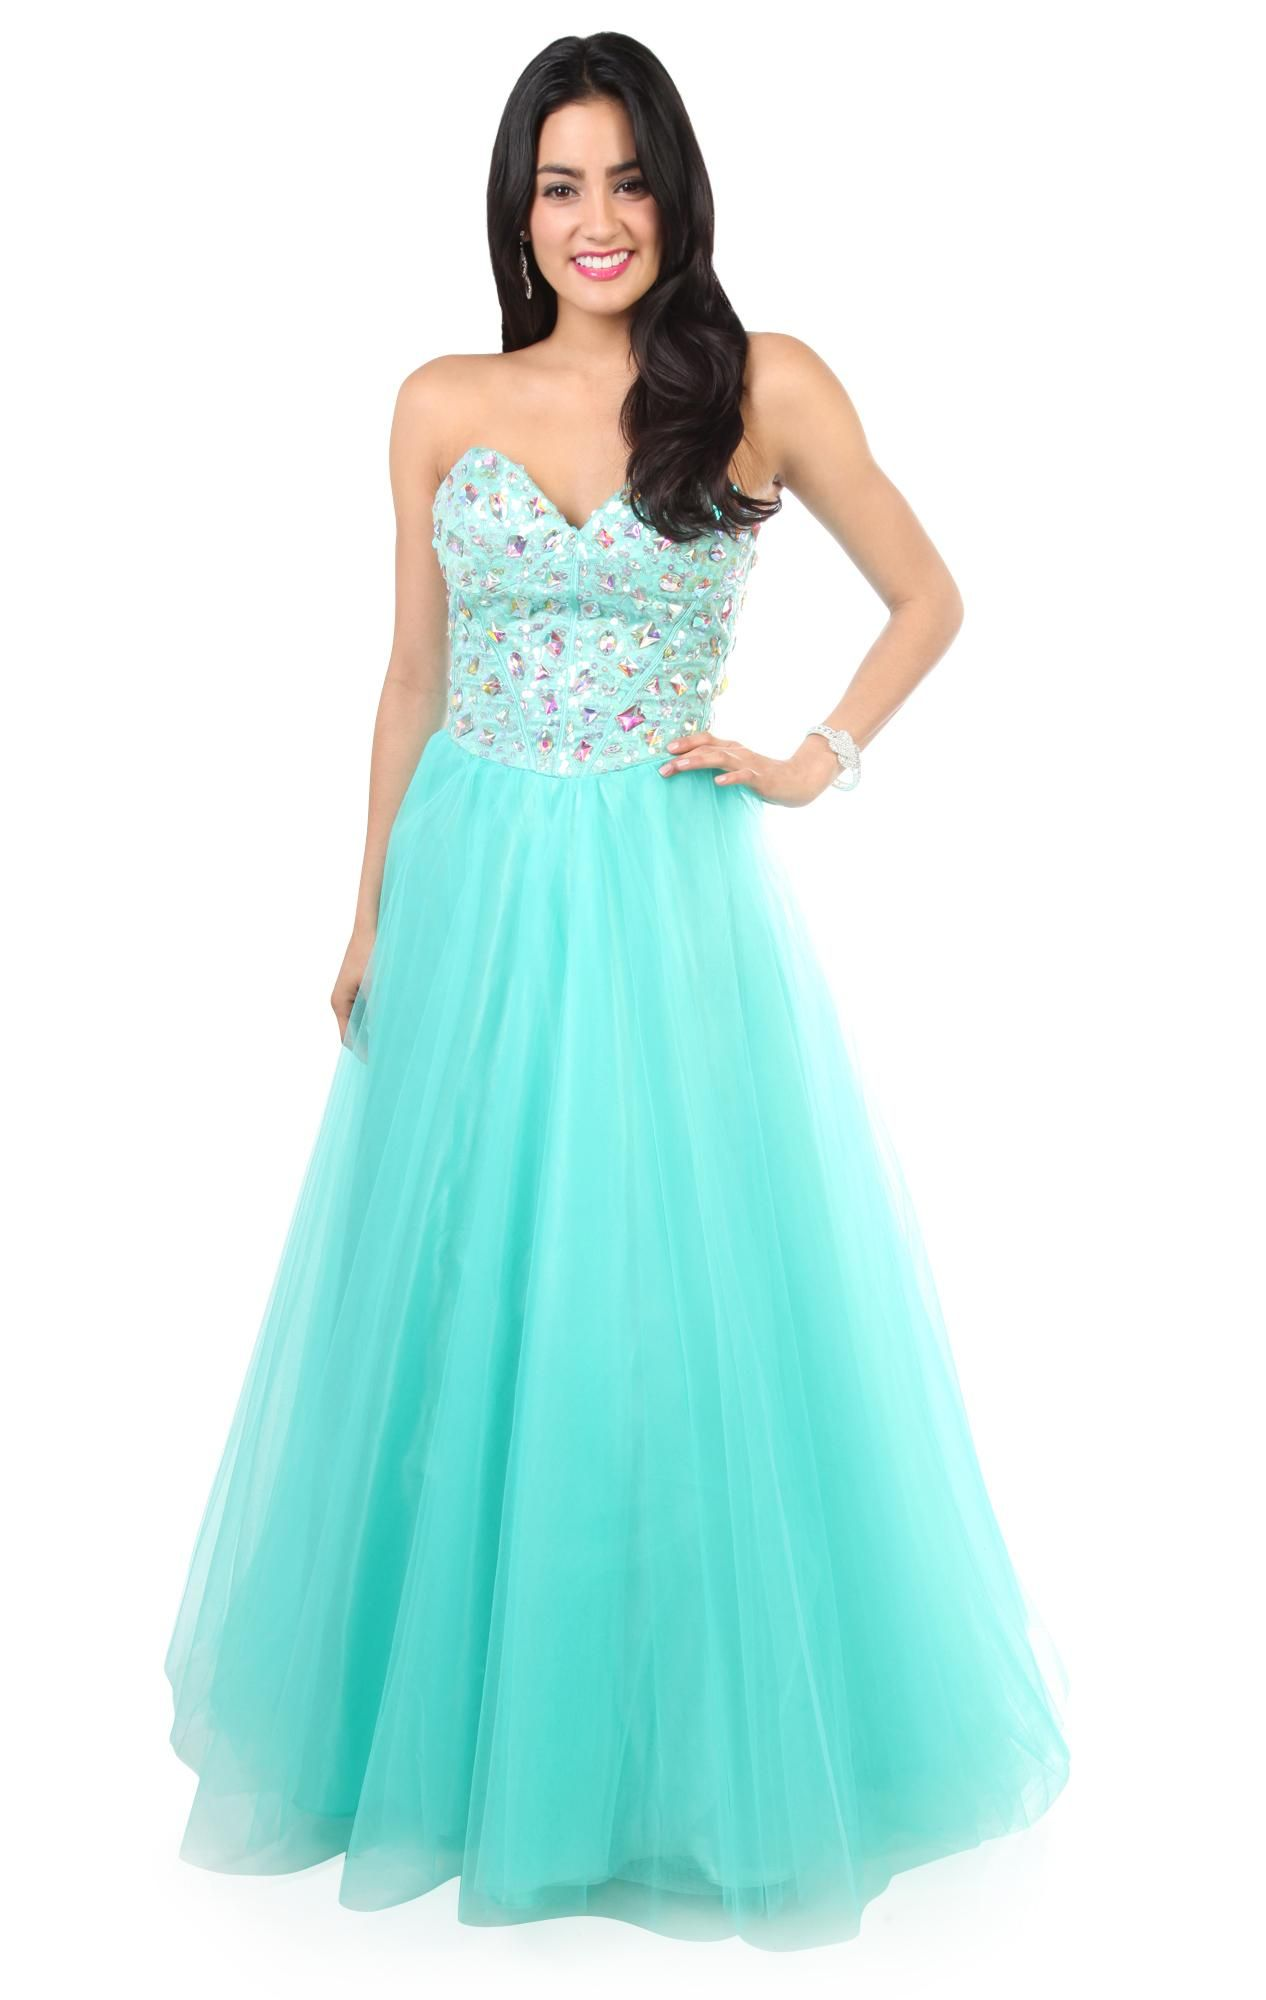 Outstanding Prom Dresses At Debs Ornament - Wedding Dresses & Bridal ...